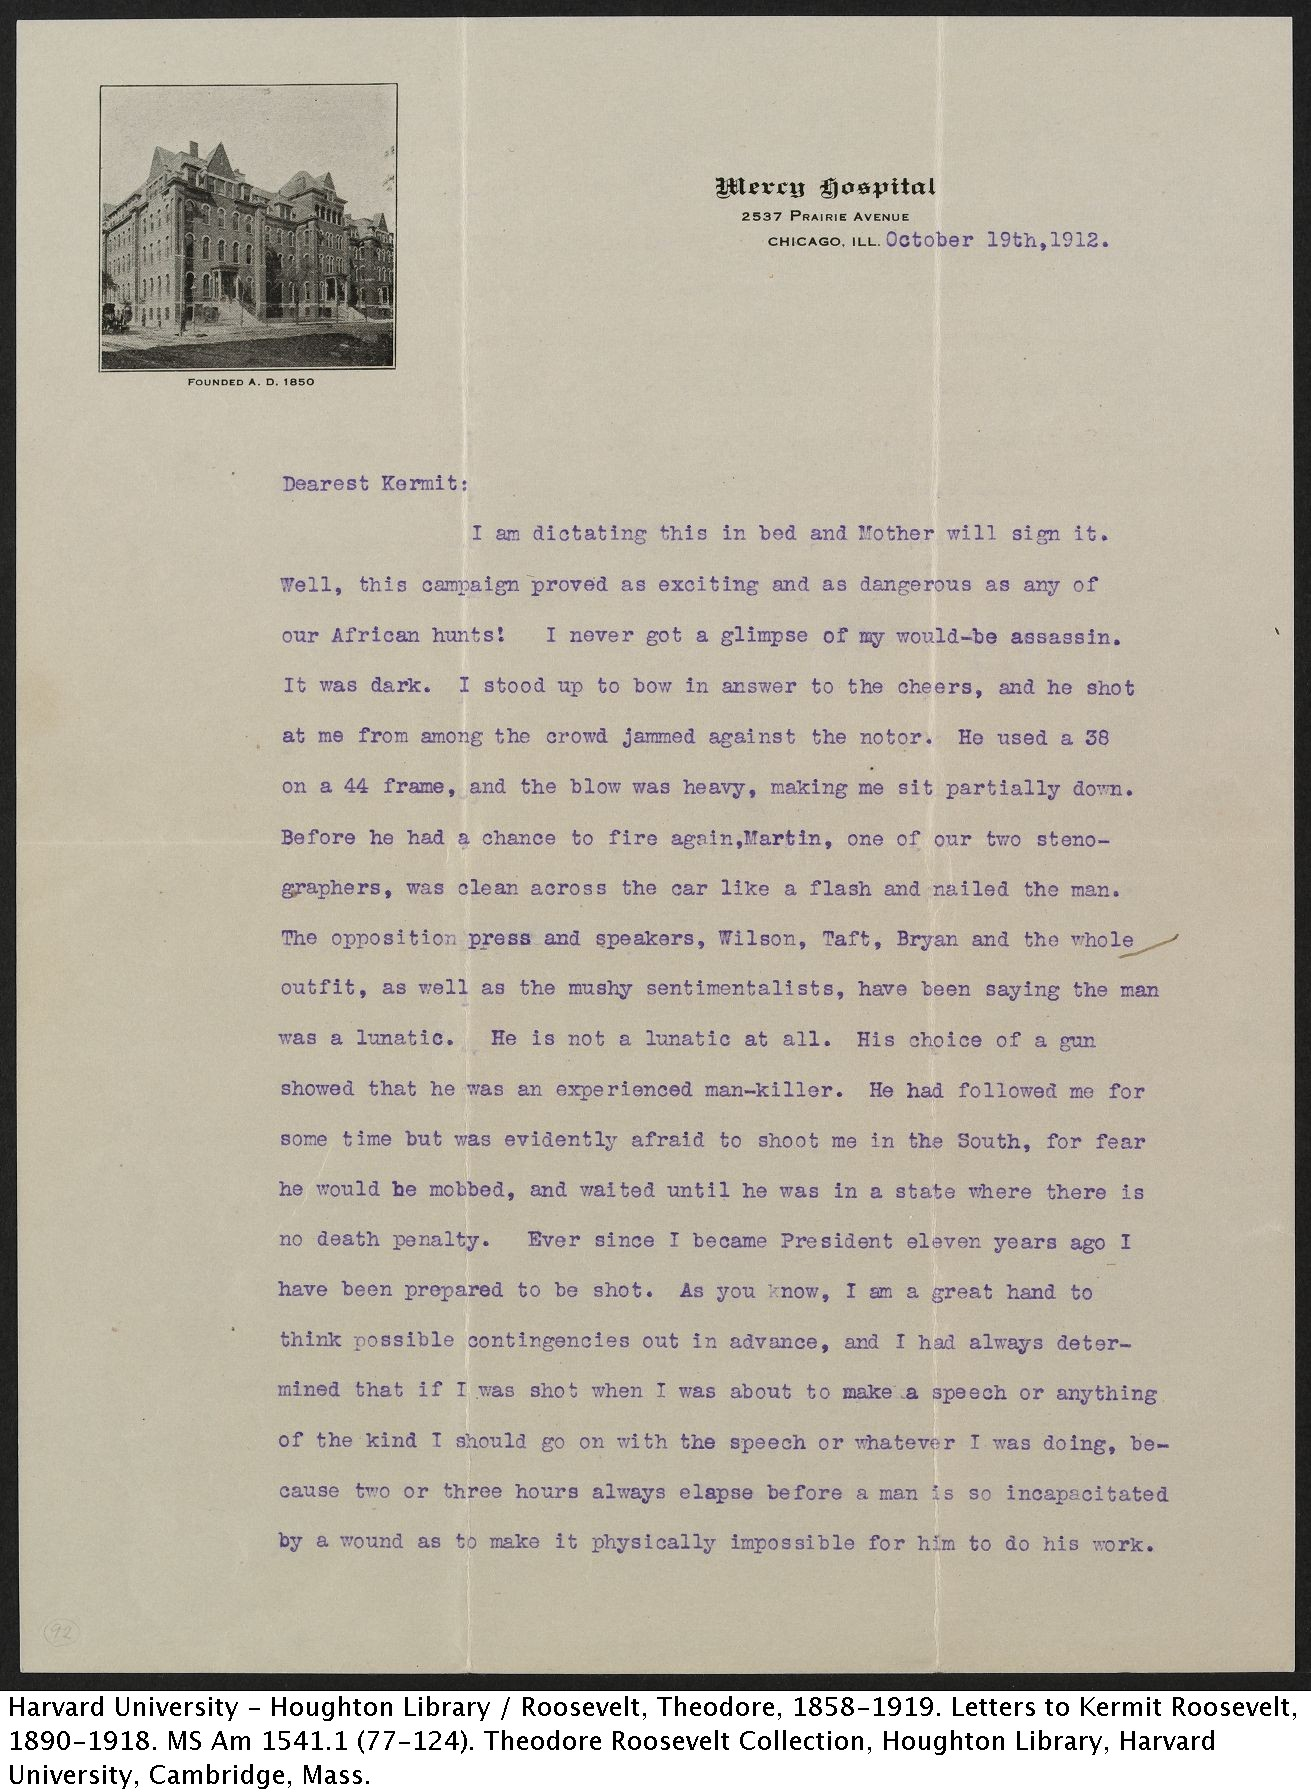 Theodore Roosevelt to Kermit Roosevelt, October 19, 1912. MS Am 1541.1 (92) p.1